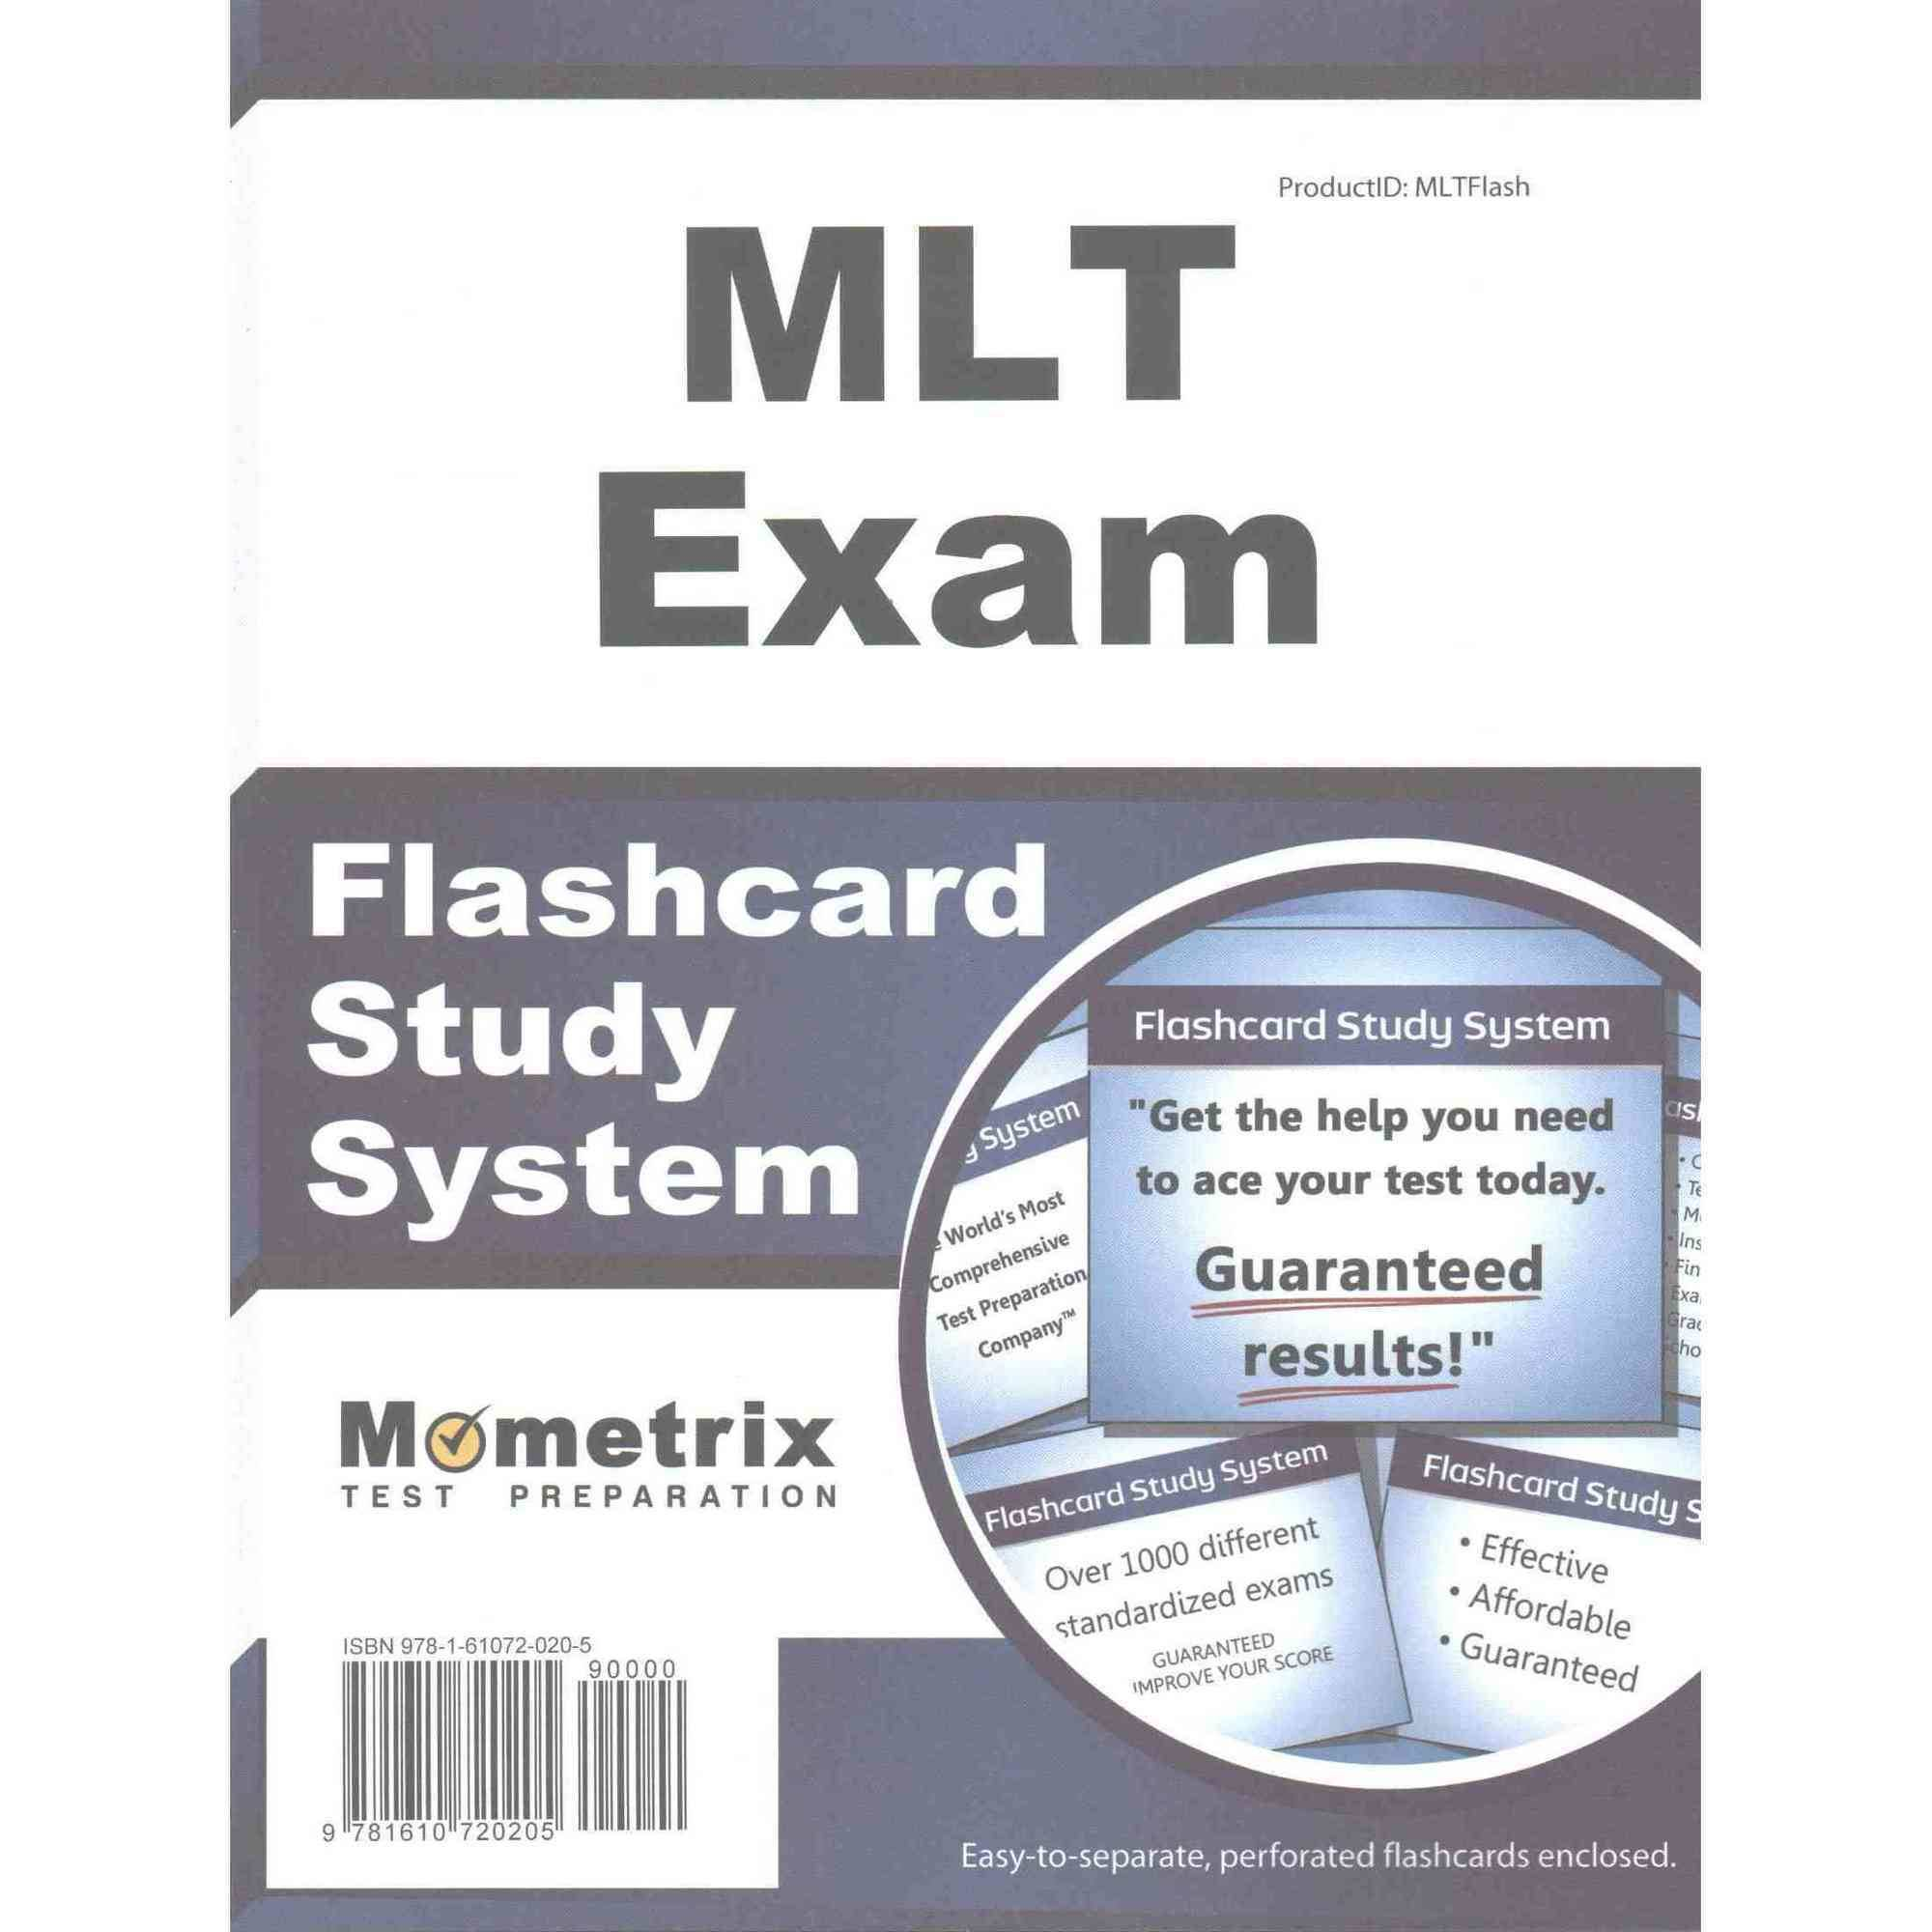 Mlt Exam Flashcard Study System: Mlt Test Practice Questions & Review for the Medical Laboratory Technician Examination